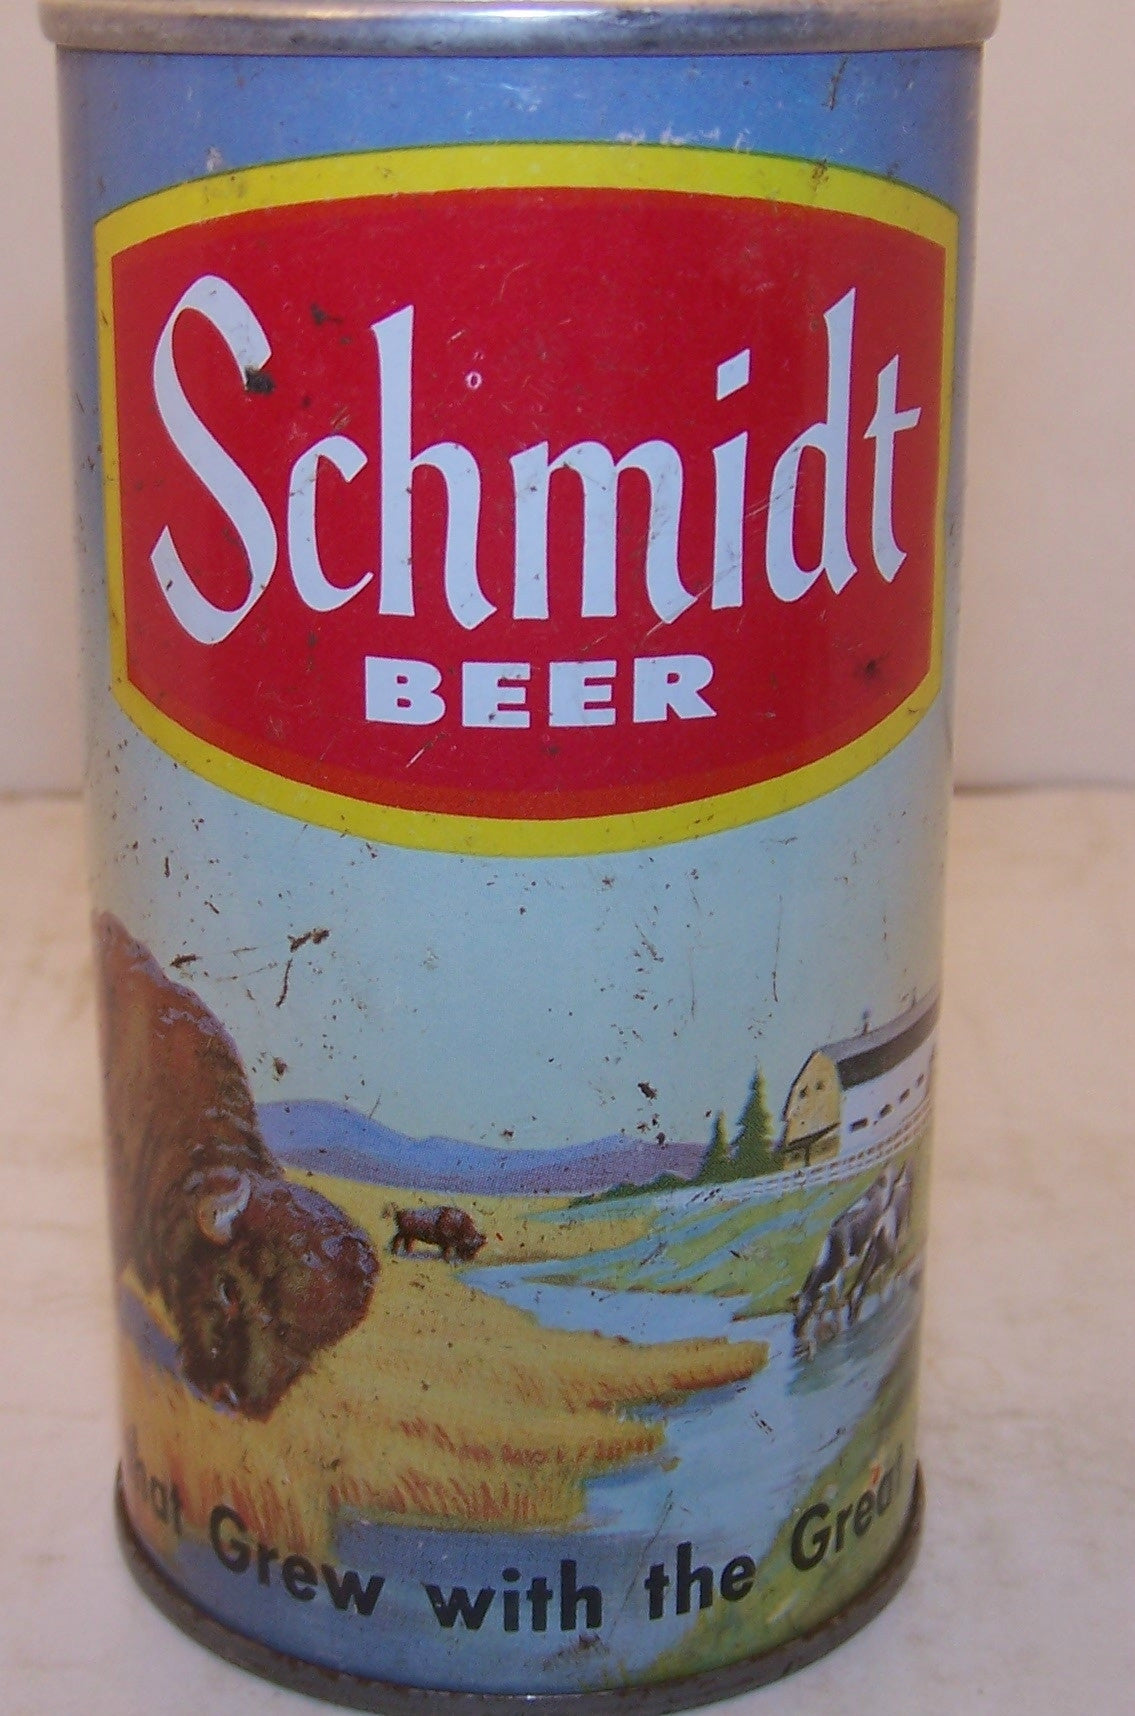 Schmidt Beer White Seam, Buffalo. USBC II 193-set 6-1 Grade 2+ Sold on 08/11/17